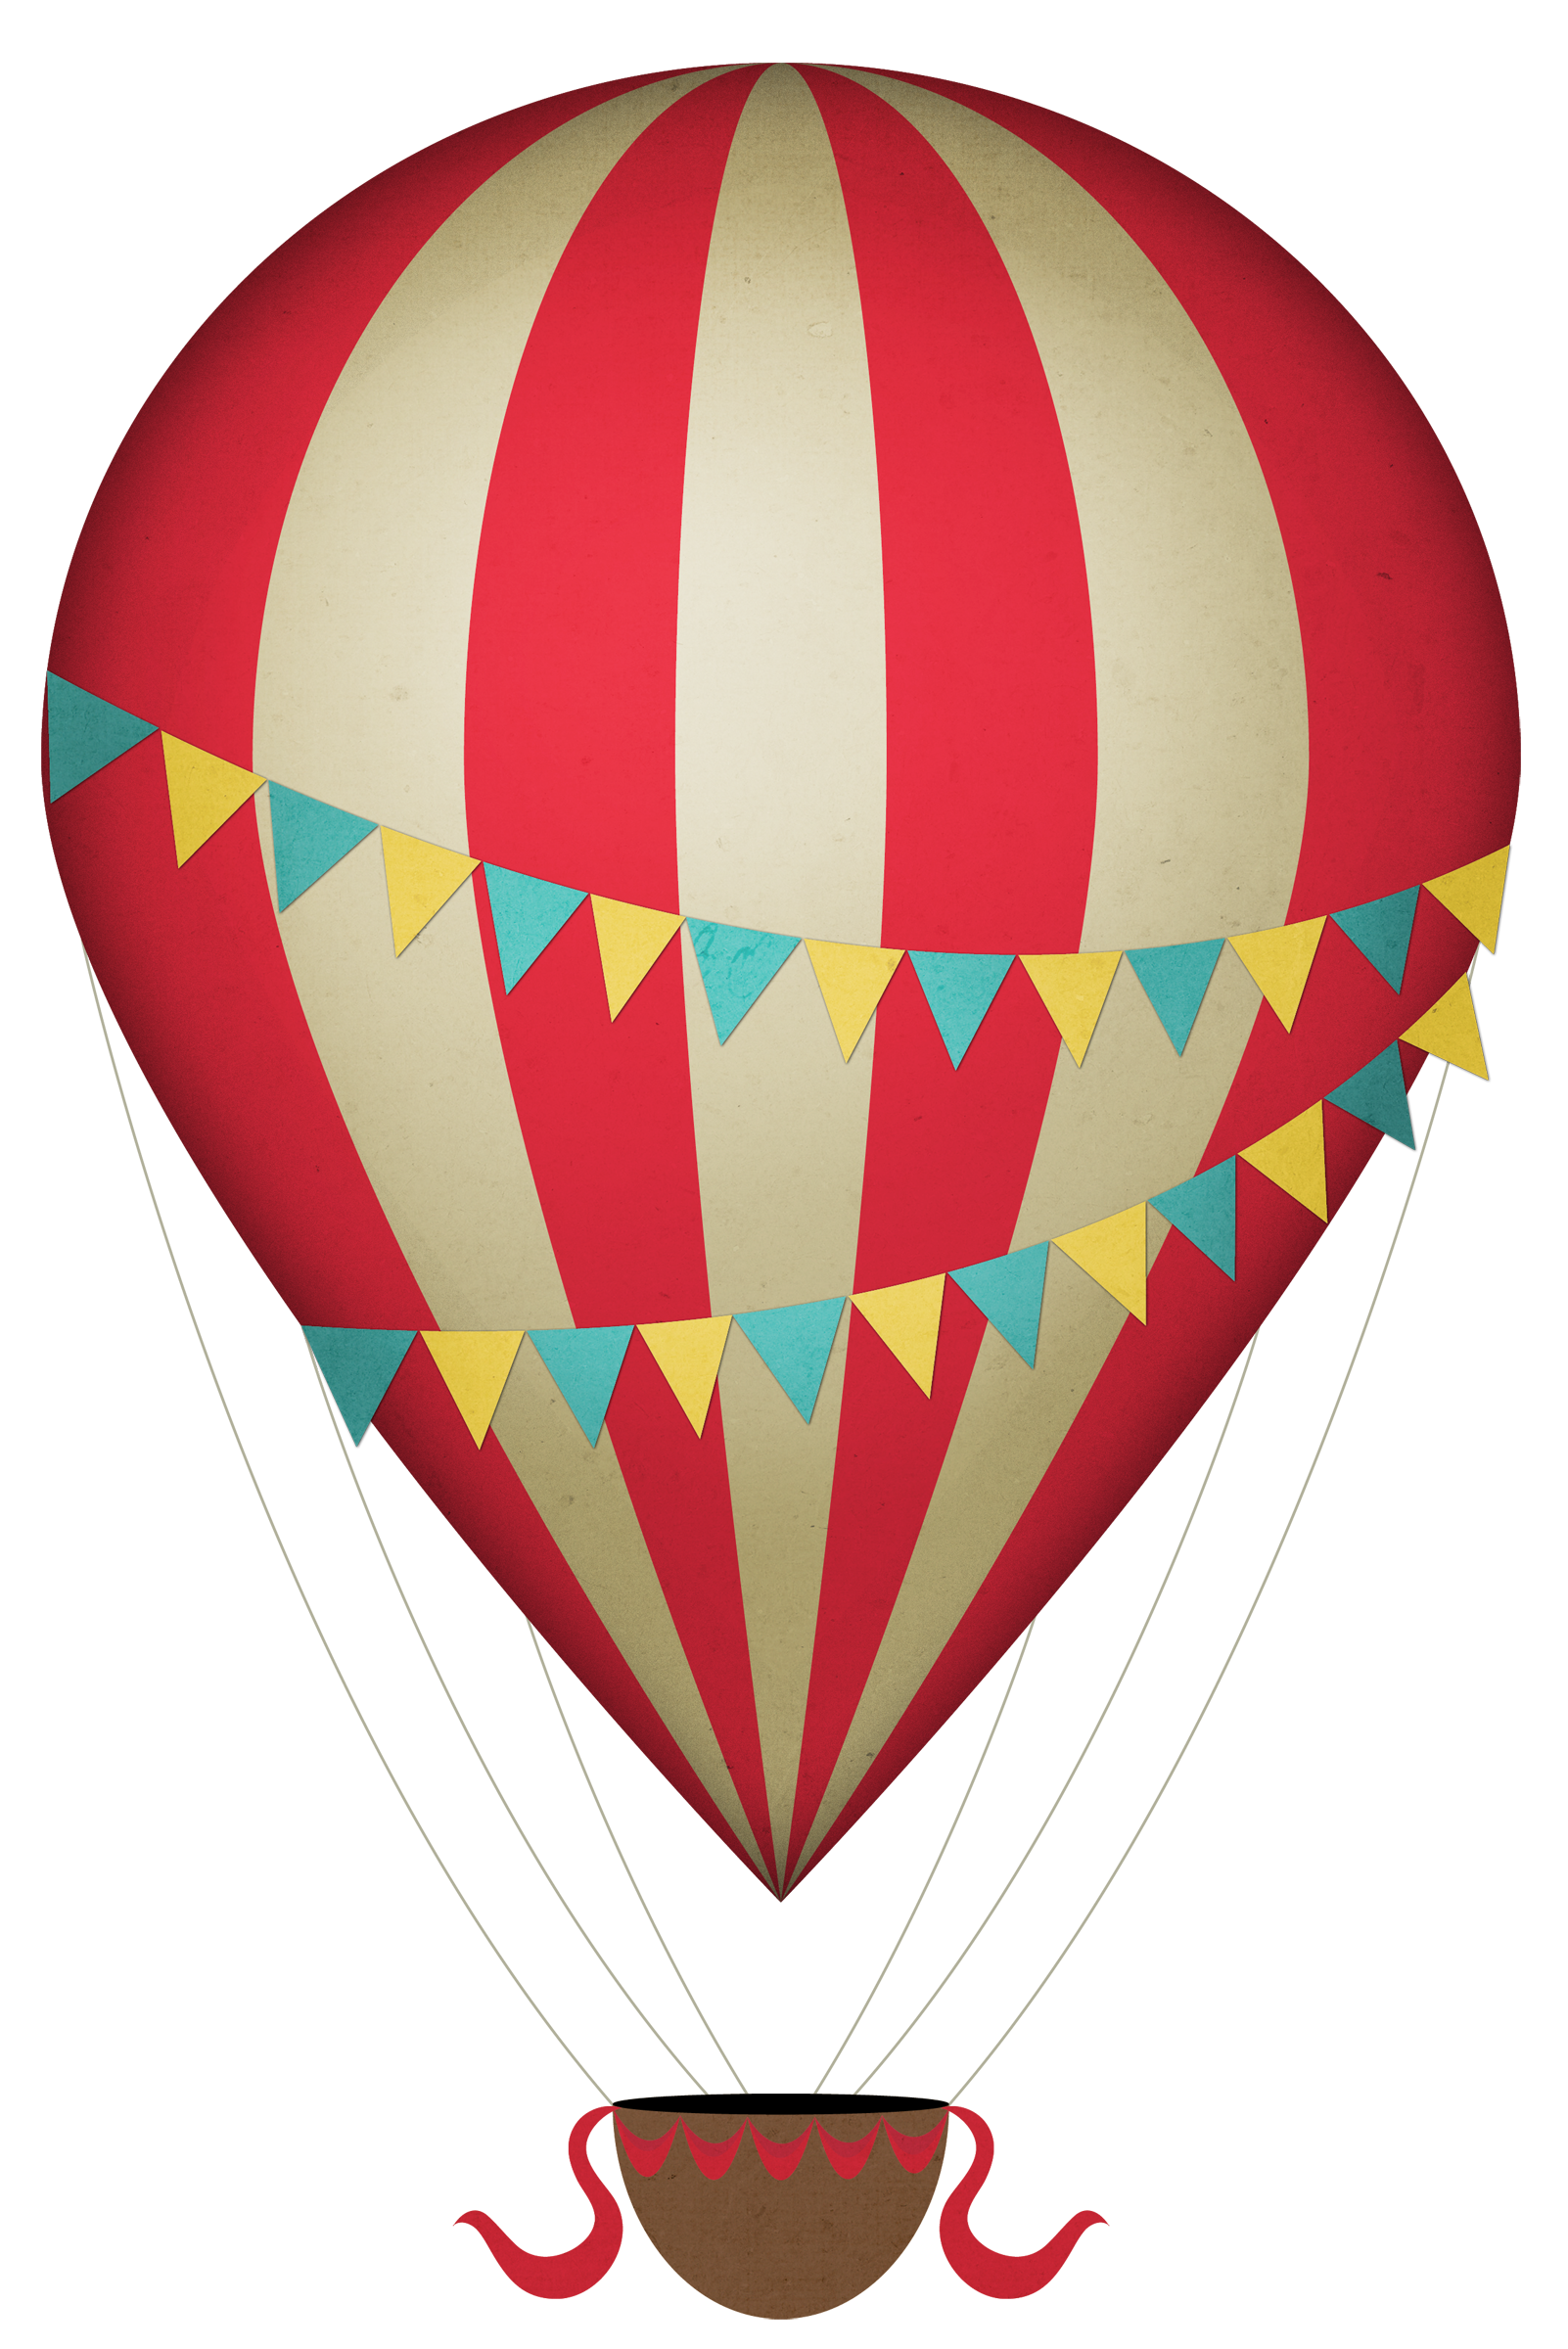 Balloon images free download. Air png image picture royalty free stock